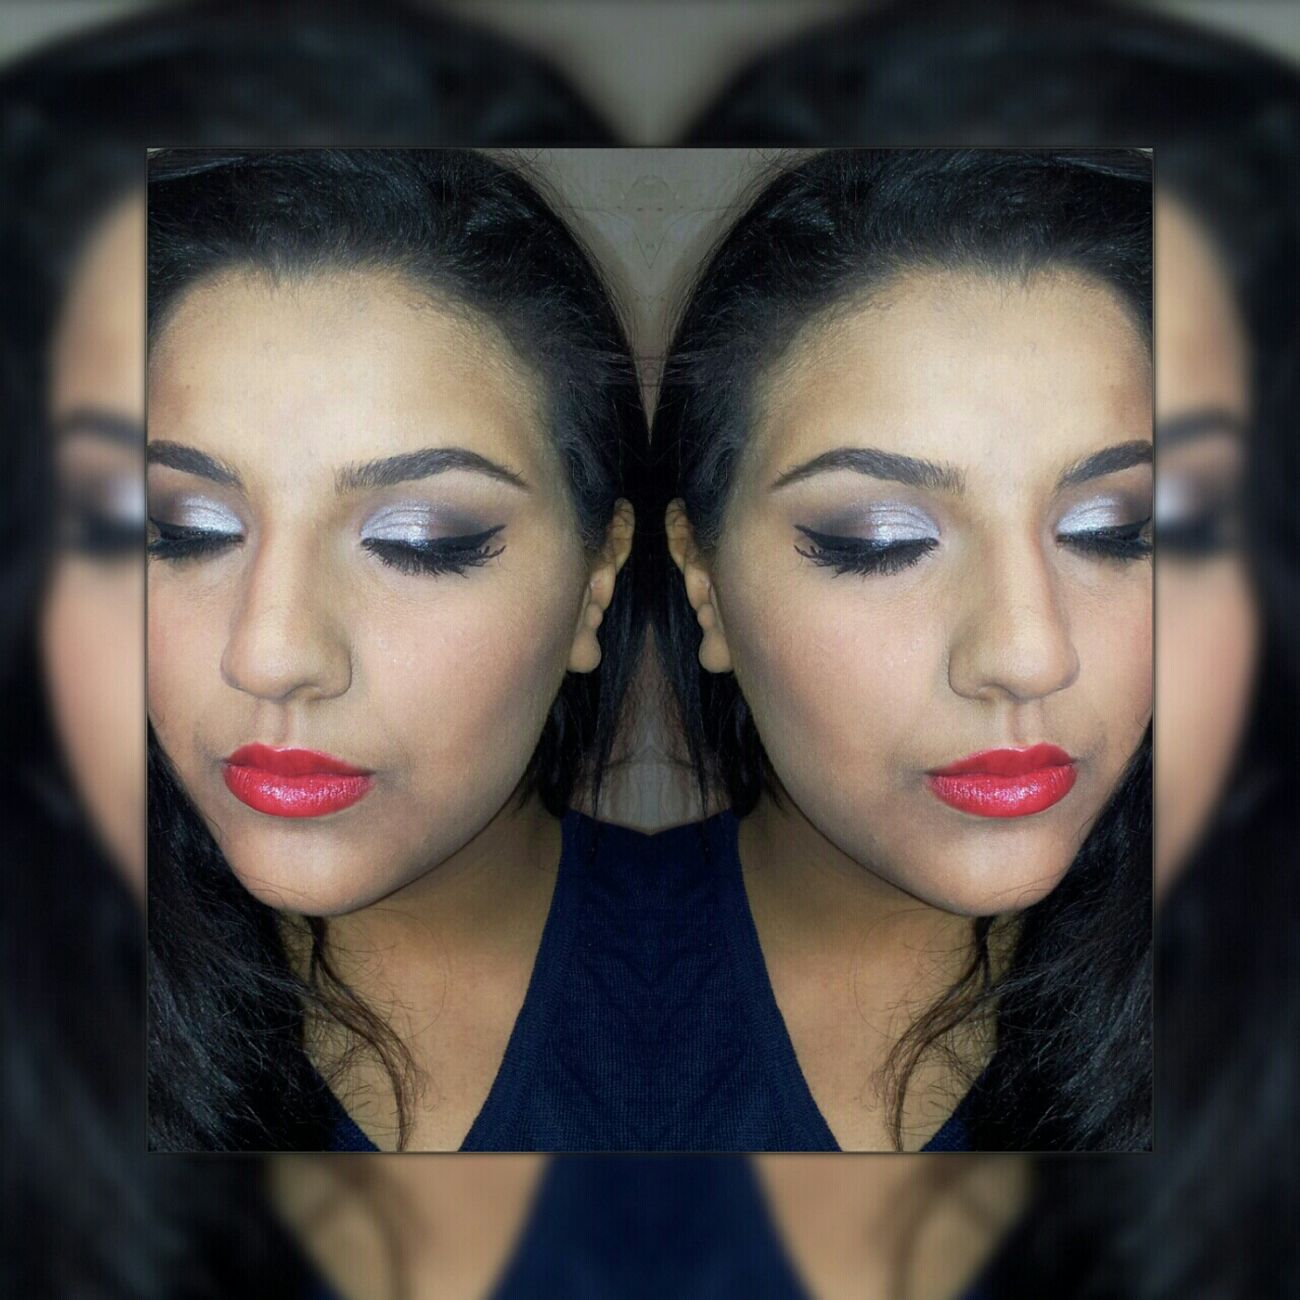 My make Up Model today for New Look Check This Out Silver  Smokey Eyes Mua Eye4photography  Faces Of EyeEm Fashion Photography